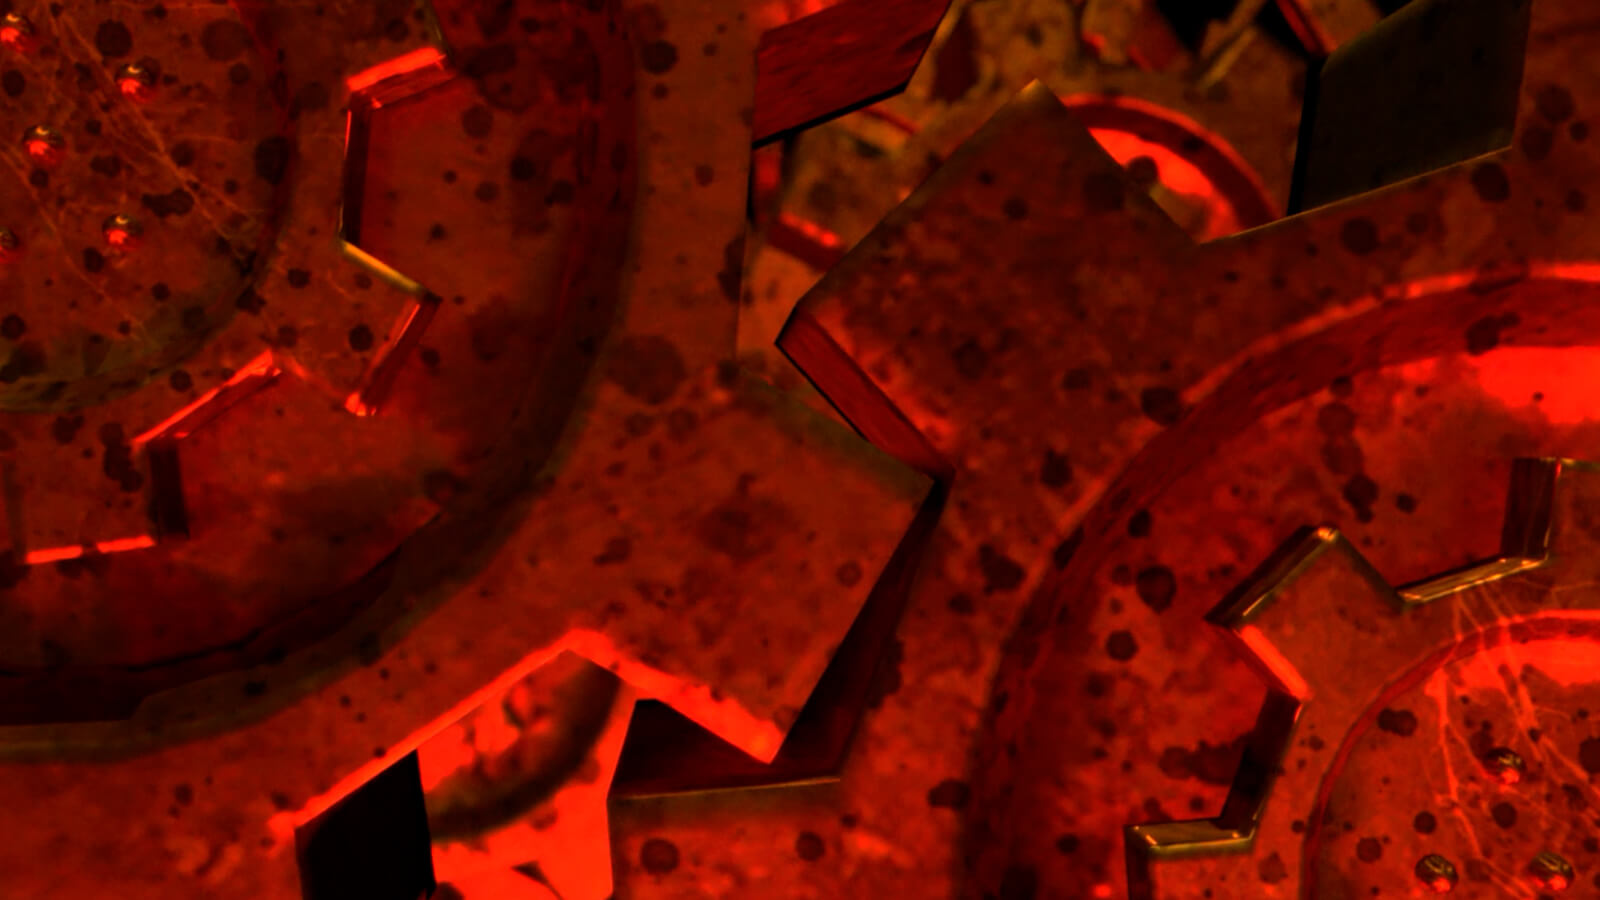 An extreme closeup of red-lit metal cogs with grease spots